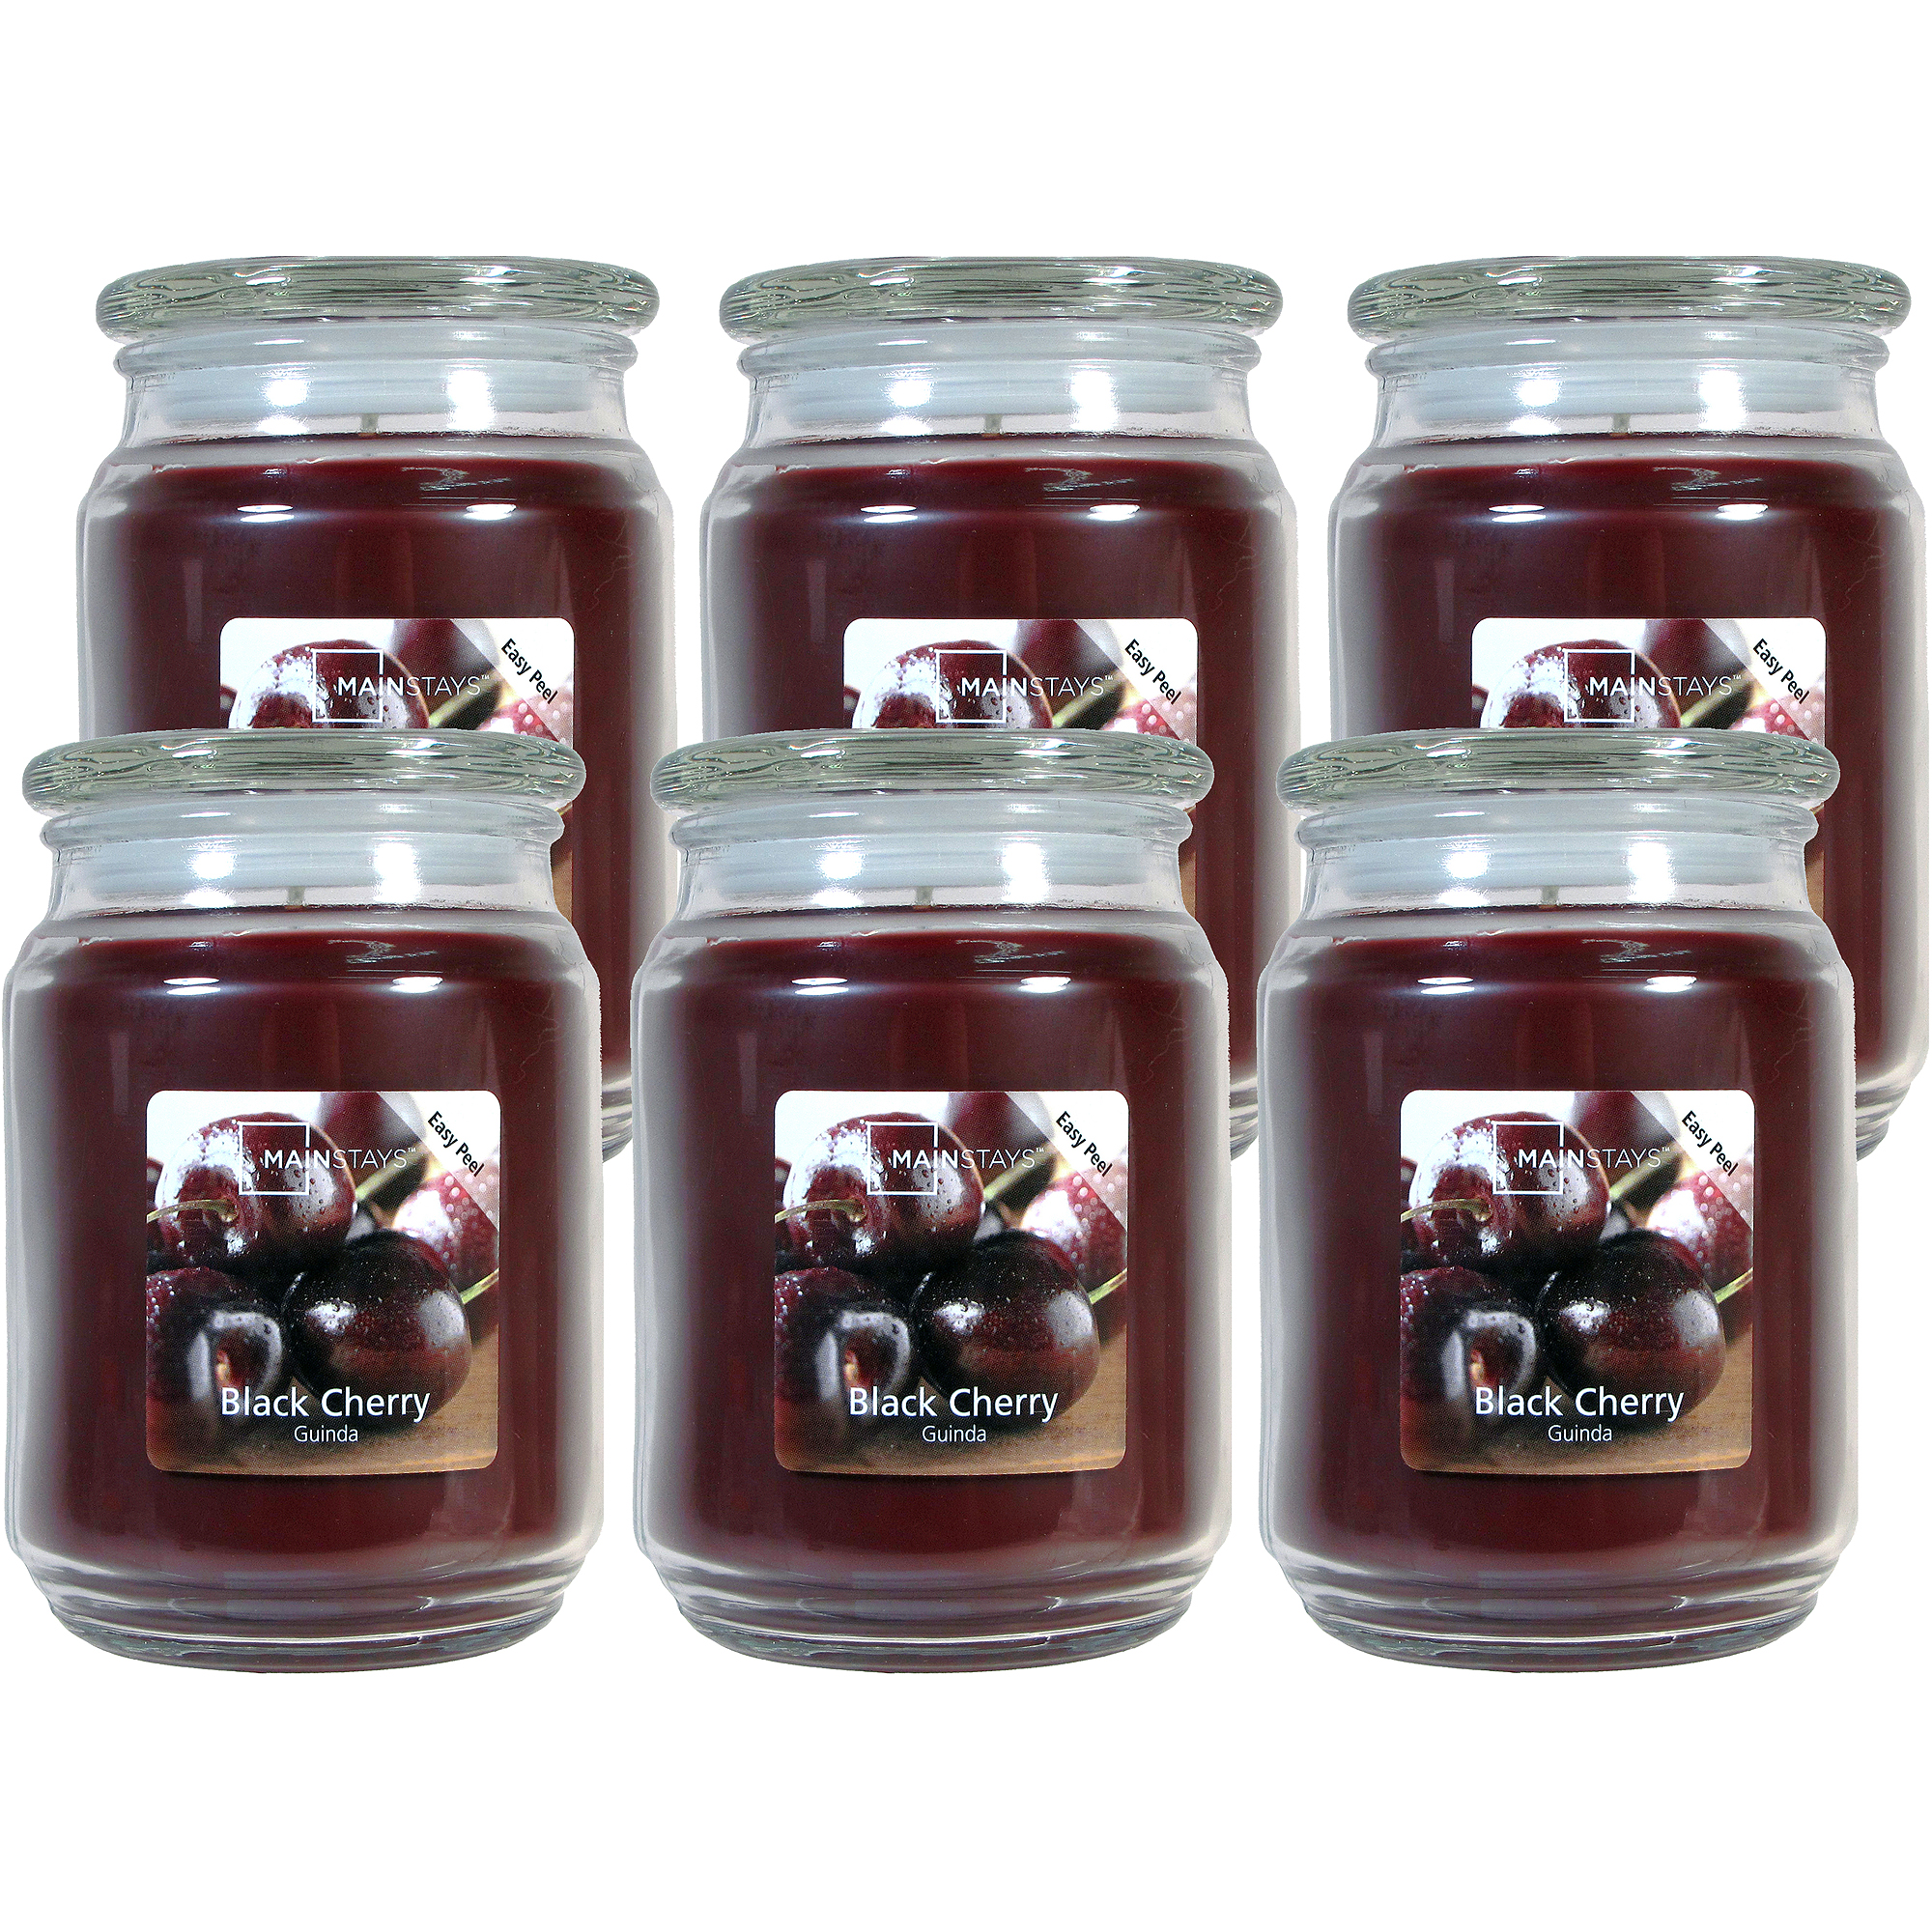 Mainstays 20-oz. Jar Candle, Black Cherry, Set of 6